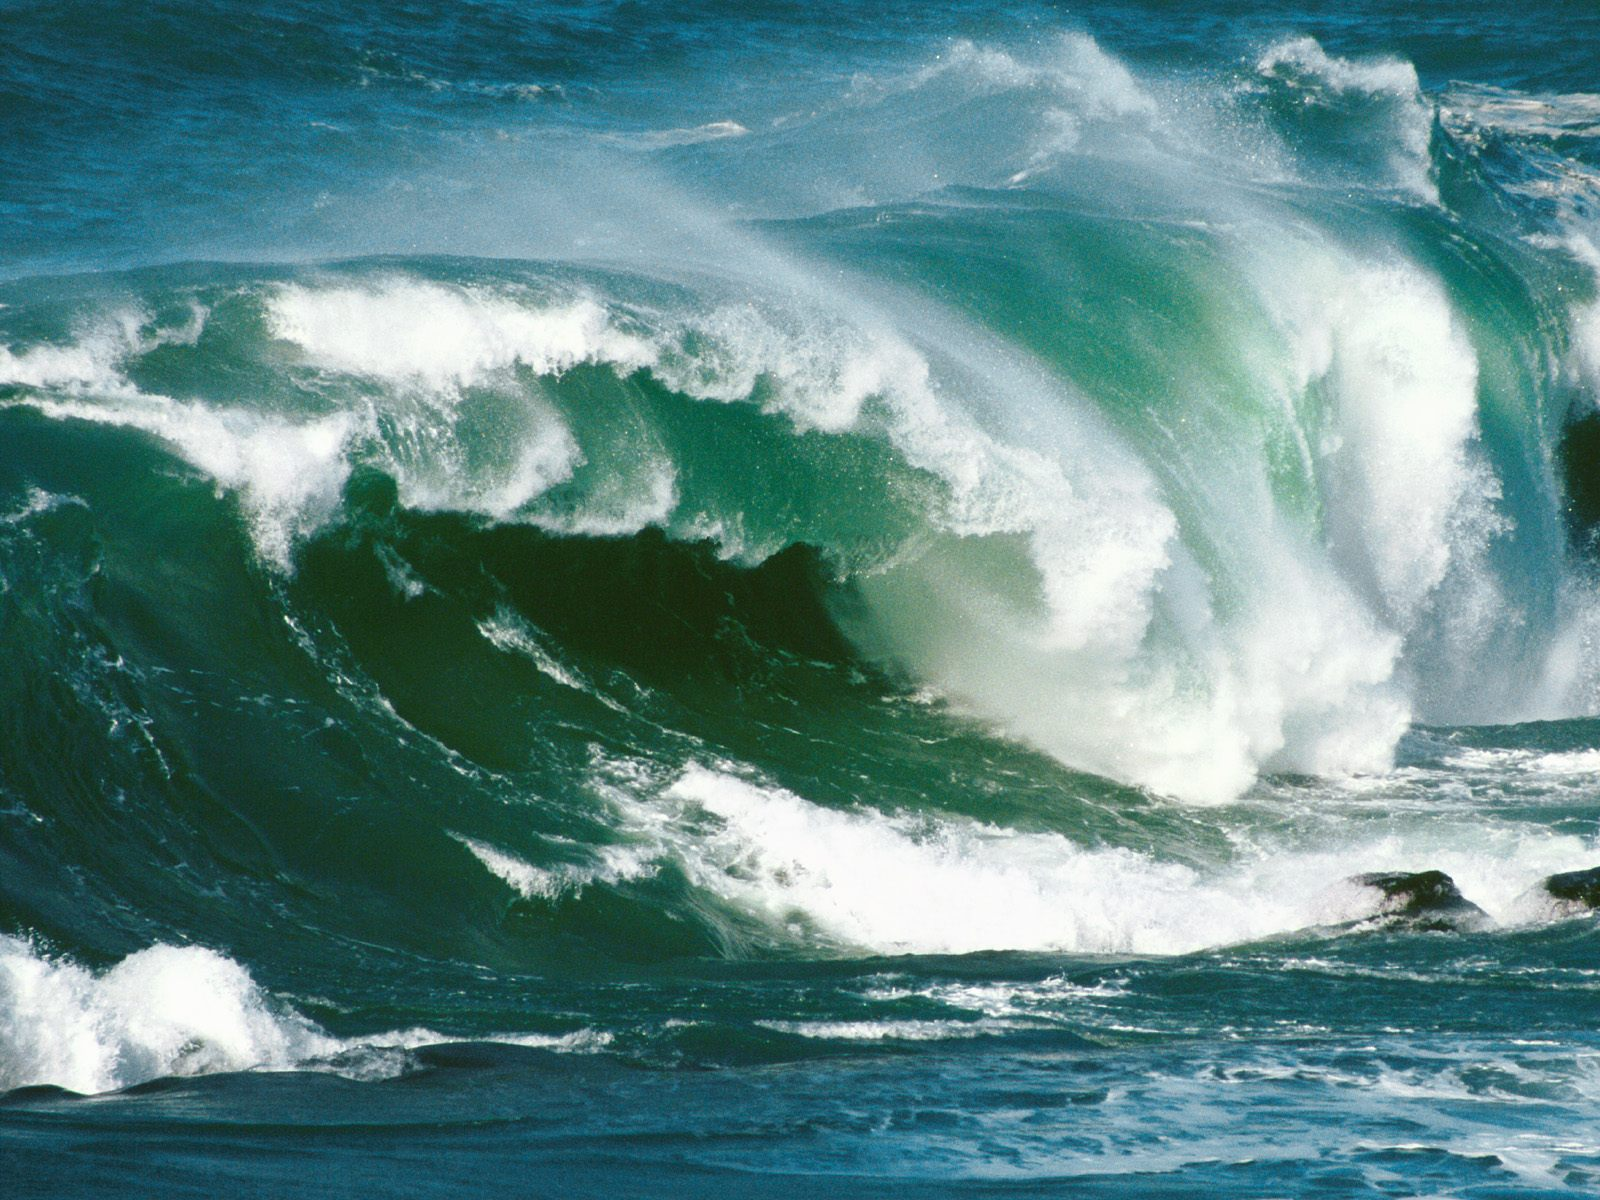 Ocean Waves Wallpapers Hd Emran Hasmi Wallpaper And Hit Dailog